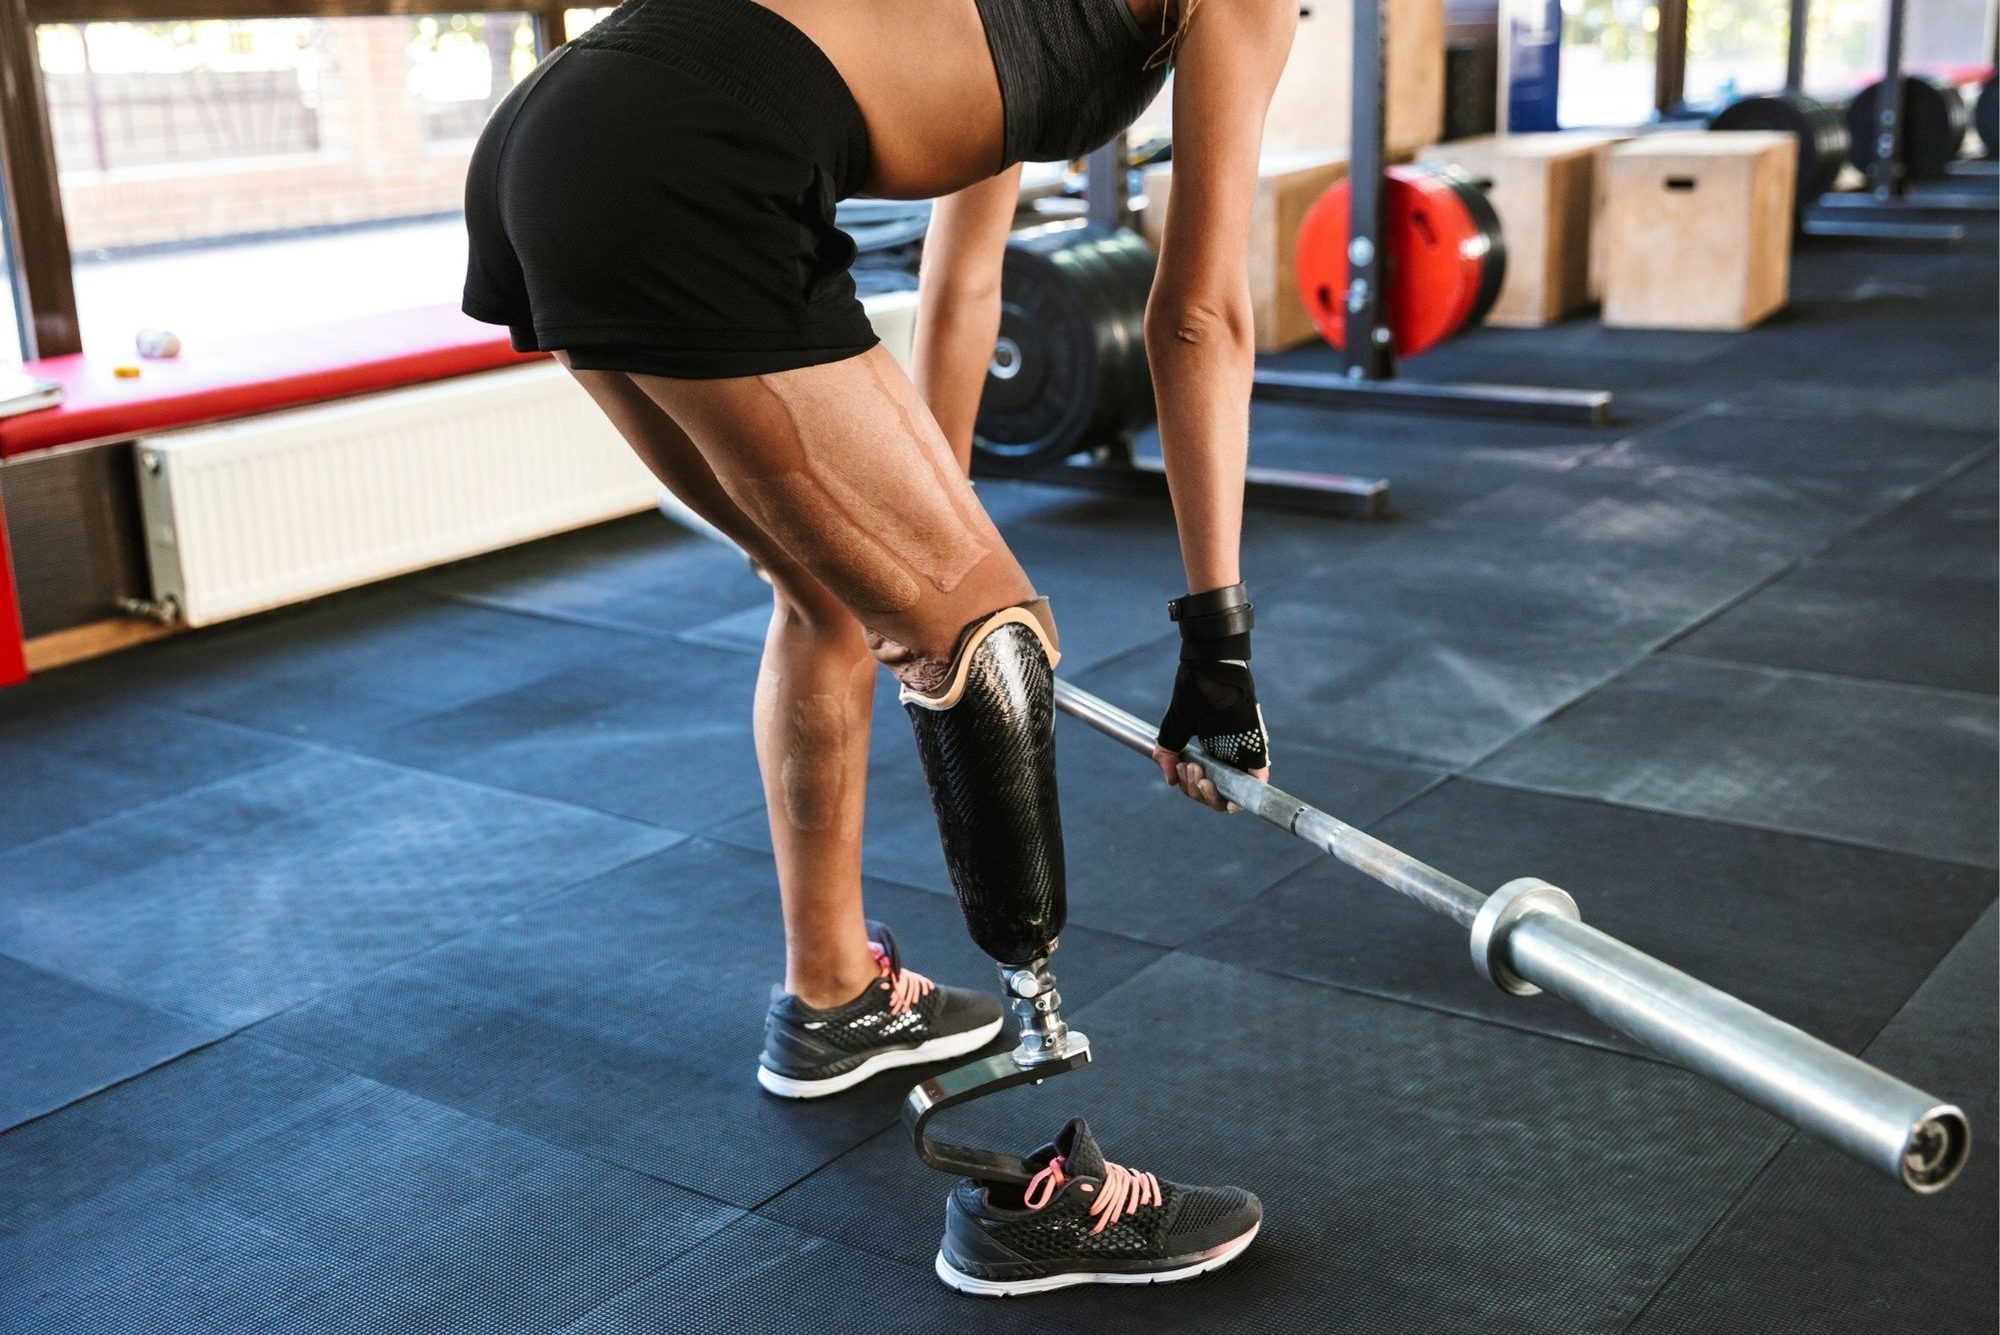 A woman with a prosthetic limb lifts weights at the gym